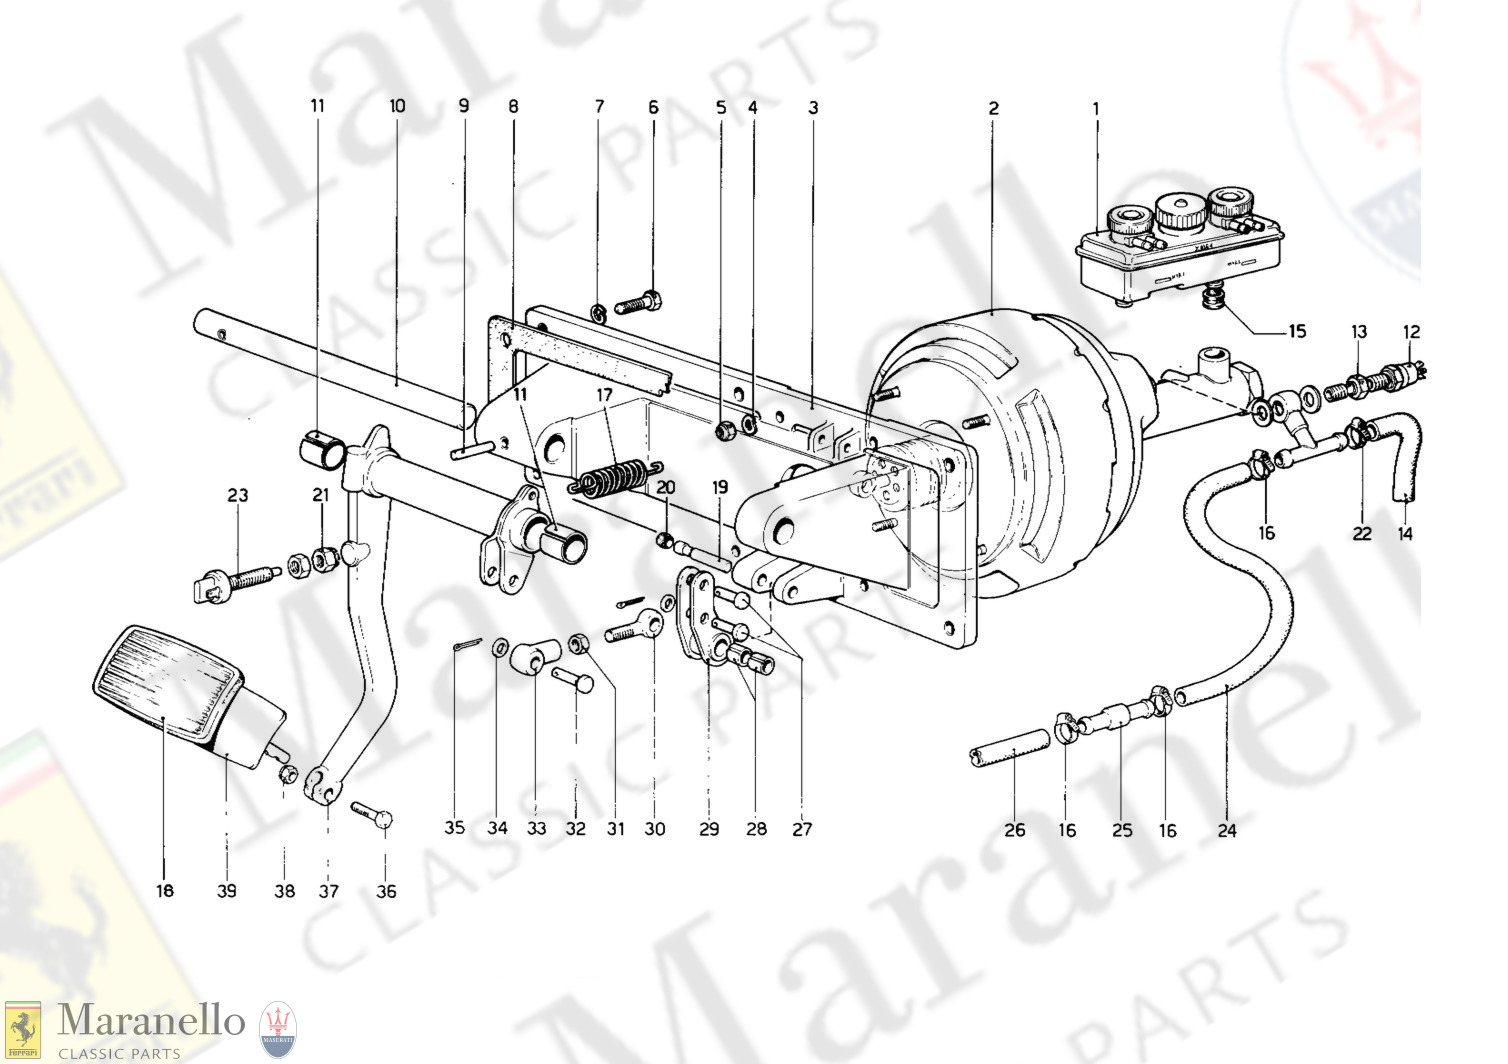 055 - Brakes Hydraulic Drive (400 Automatic - Variants For RHD Version)